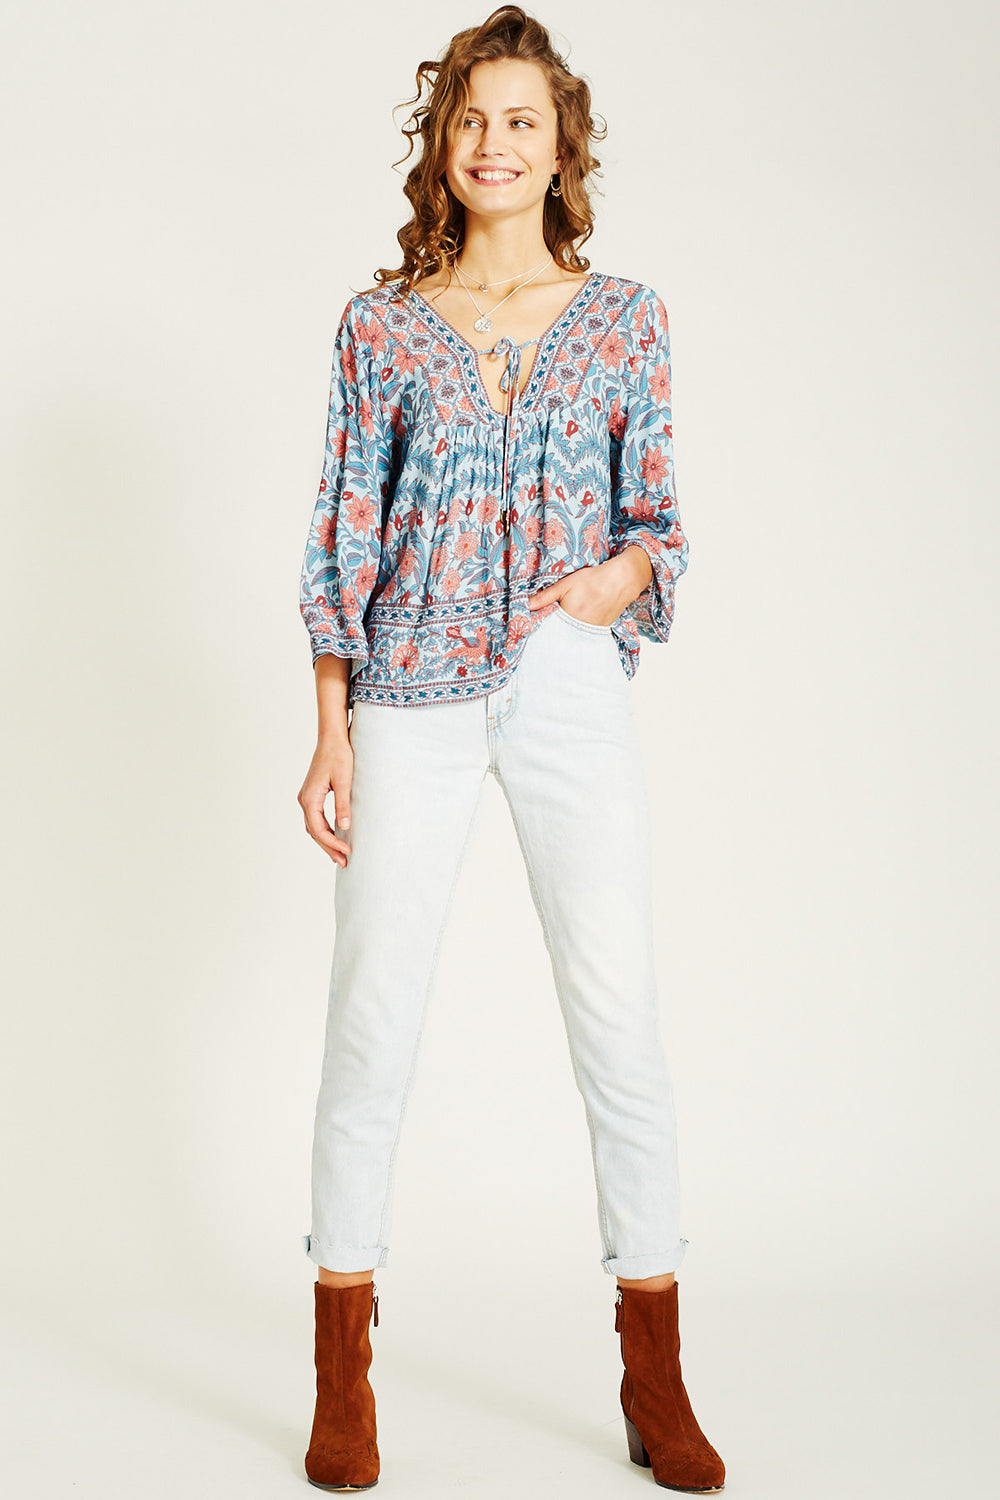 Marigold Blouse in Crystal